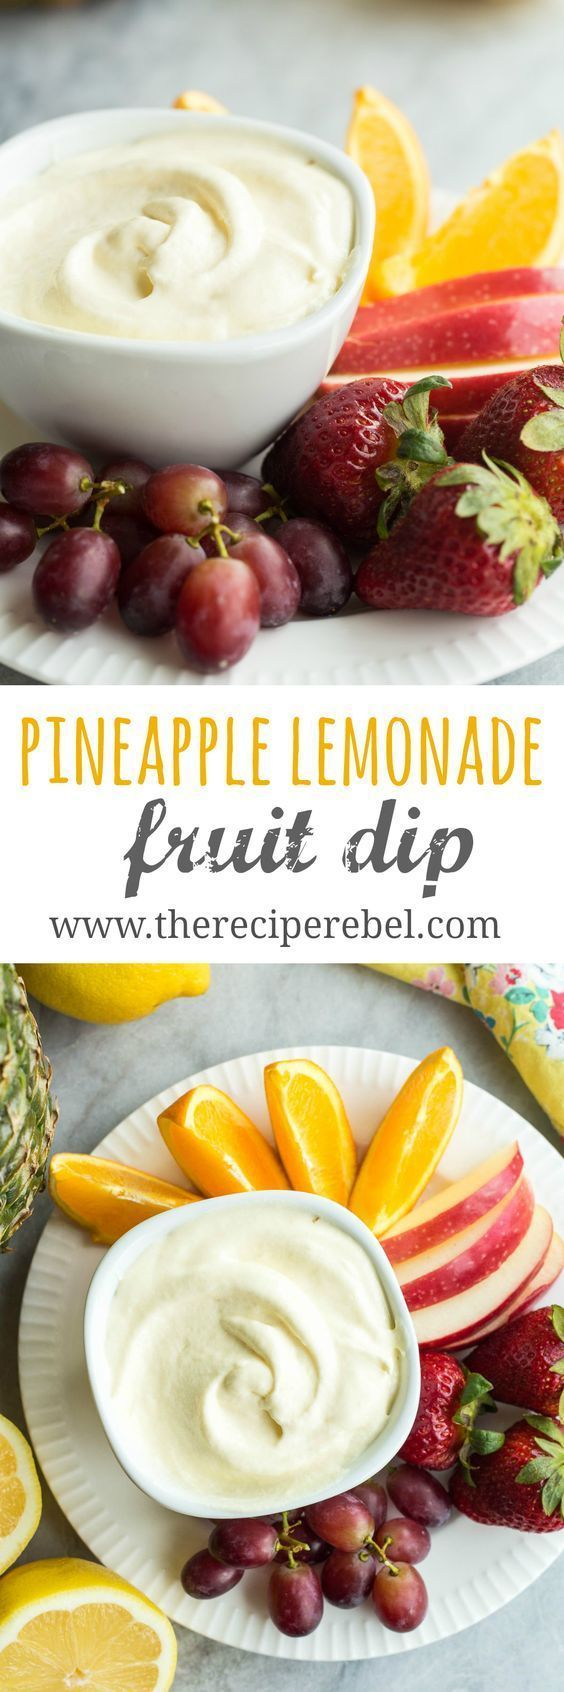 This creamy Pineapple Lemonade fruit dip is made with a homemade pineapple lemon curd and whipped cream! Change up the fruit juice flavors to make any kind! #pineapplelemonade This creamy Pineapple Lemonade fruit dip is made with a homemade pineapple lemon curd and whipped cream! Change up the fruit juice flavors to make any kind! #pineapplelemonade This creamy Pineapple Lemonade fruit dip is made with a homemade pineapple lemon curd and whipped cream! Change up the fruit juice flavors to make a #pineapplelemonade